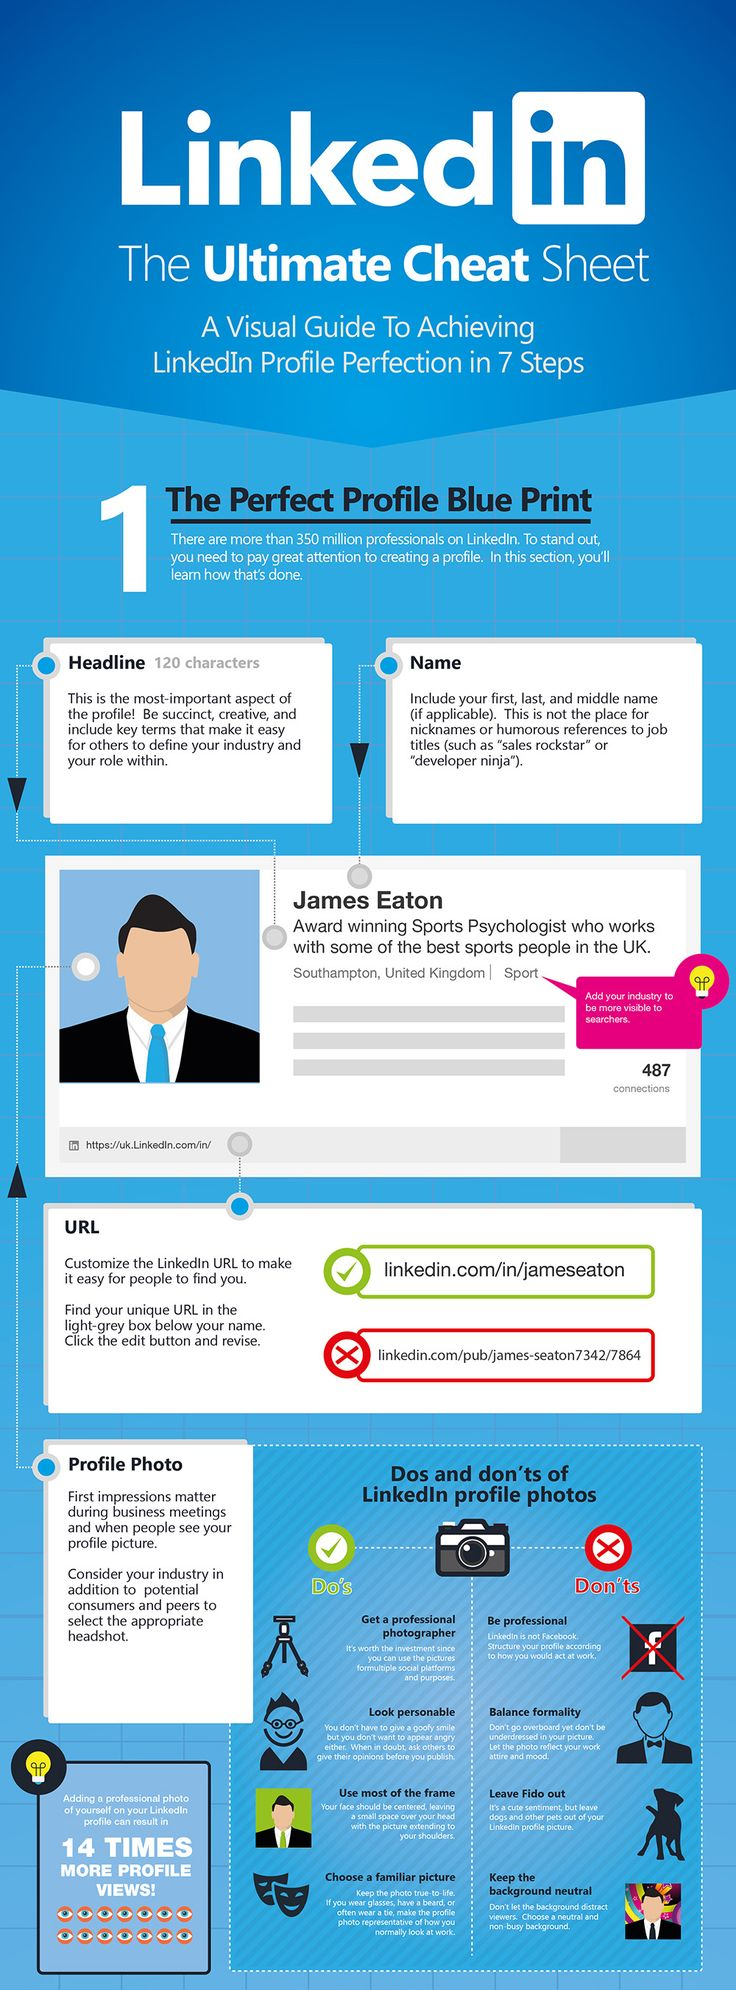 Tips to Achieve LinkedIn Profile Perfection - Tipsographic